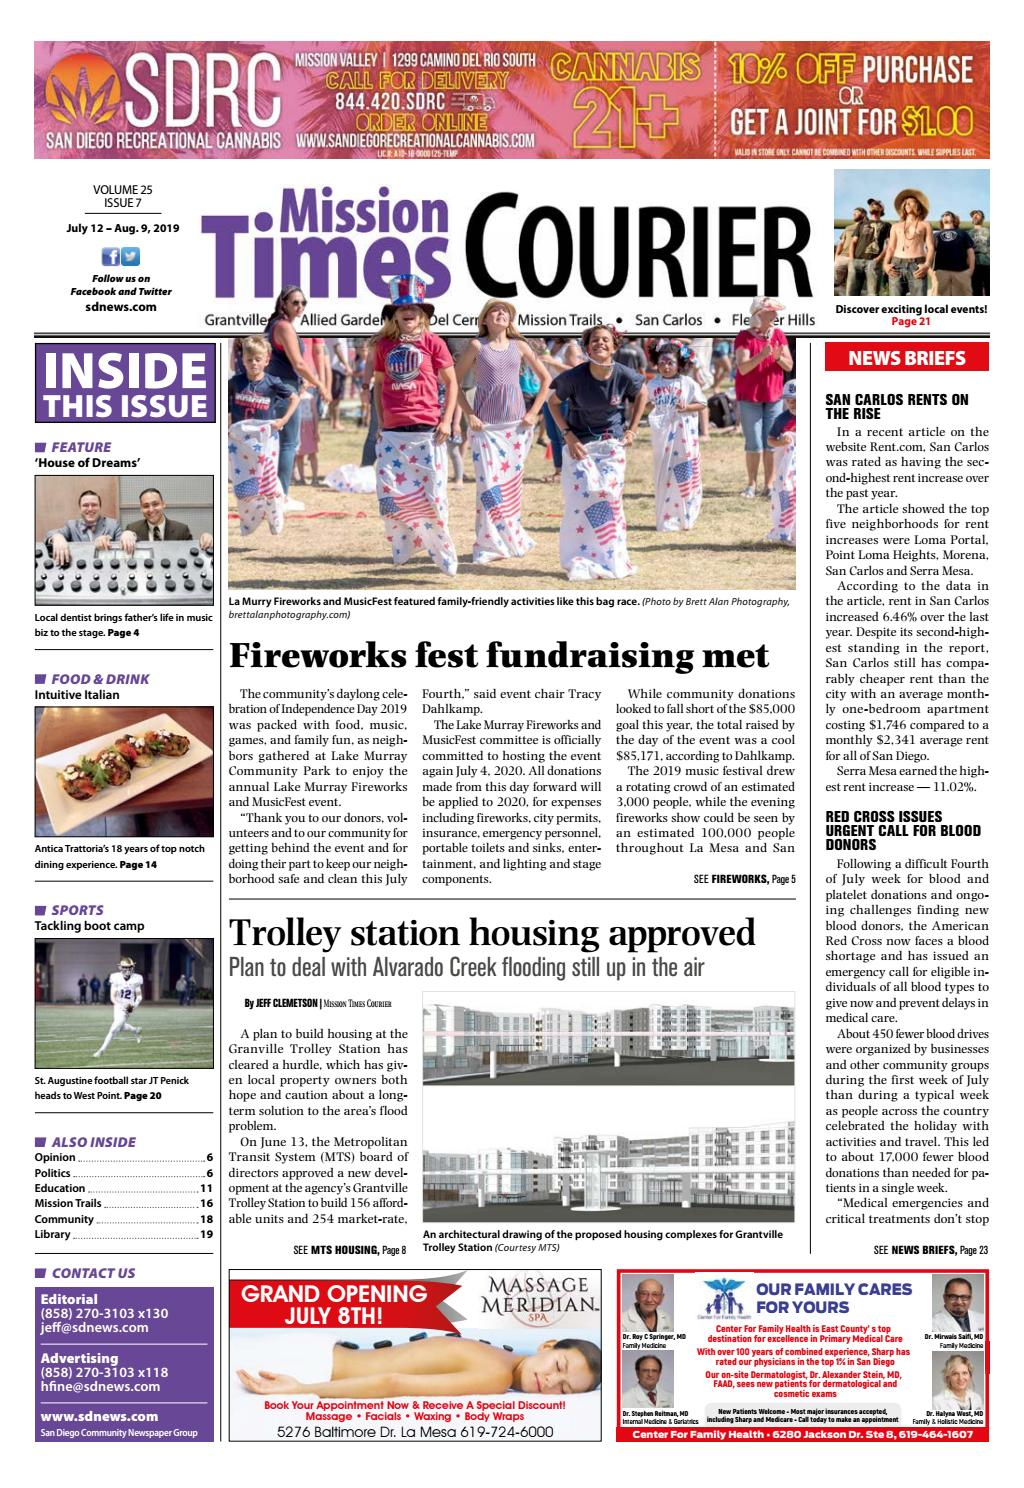 Mission Times Courier Volume 25, Issue 7 July 12, 2019